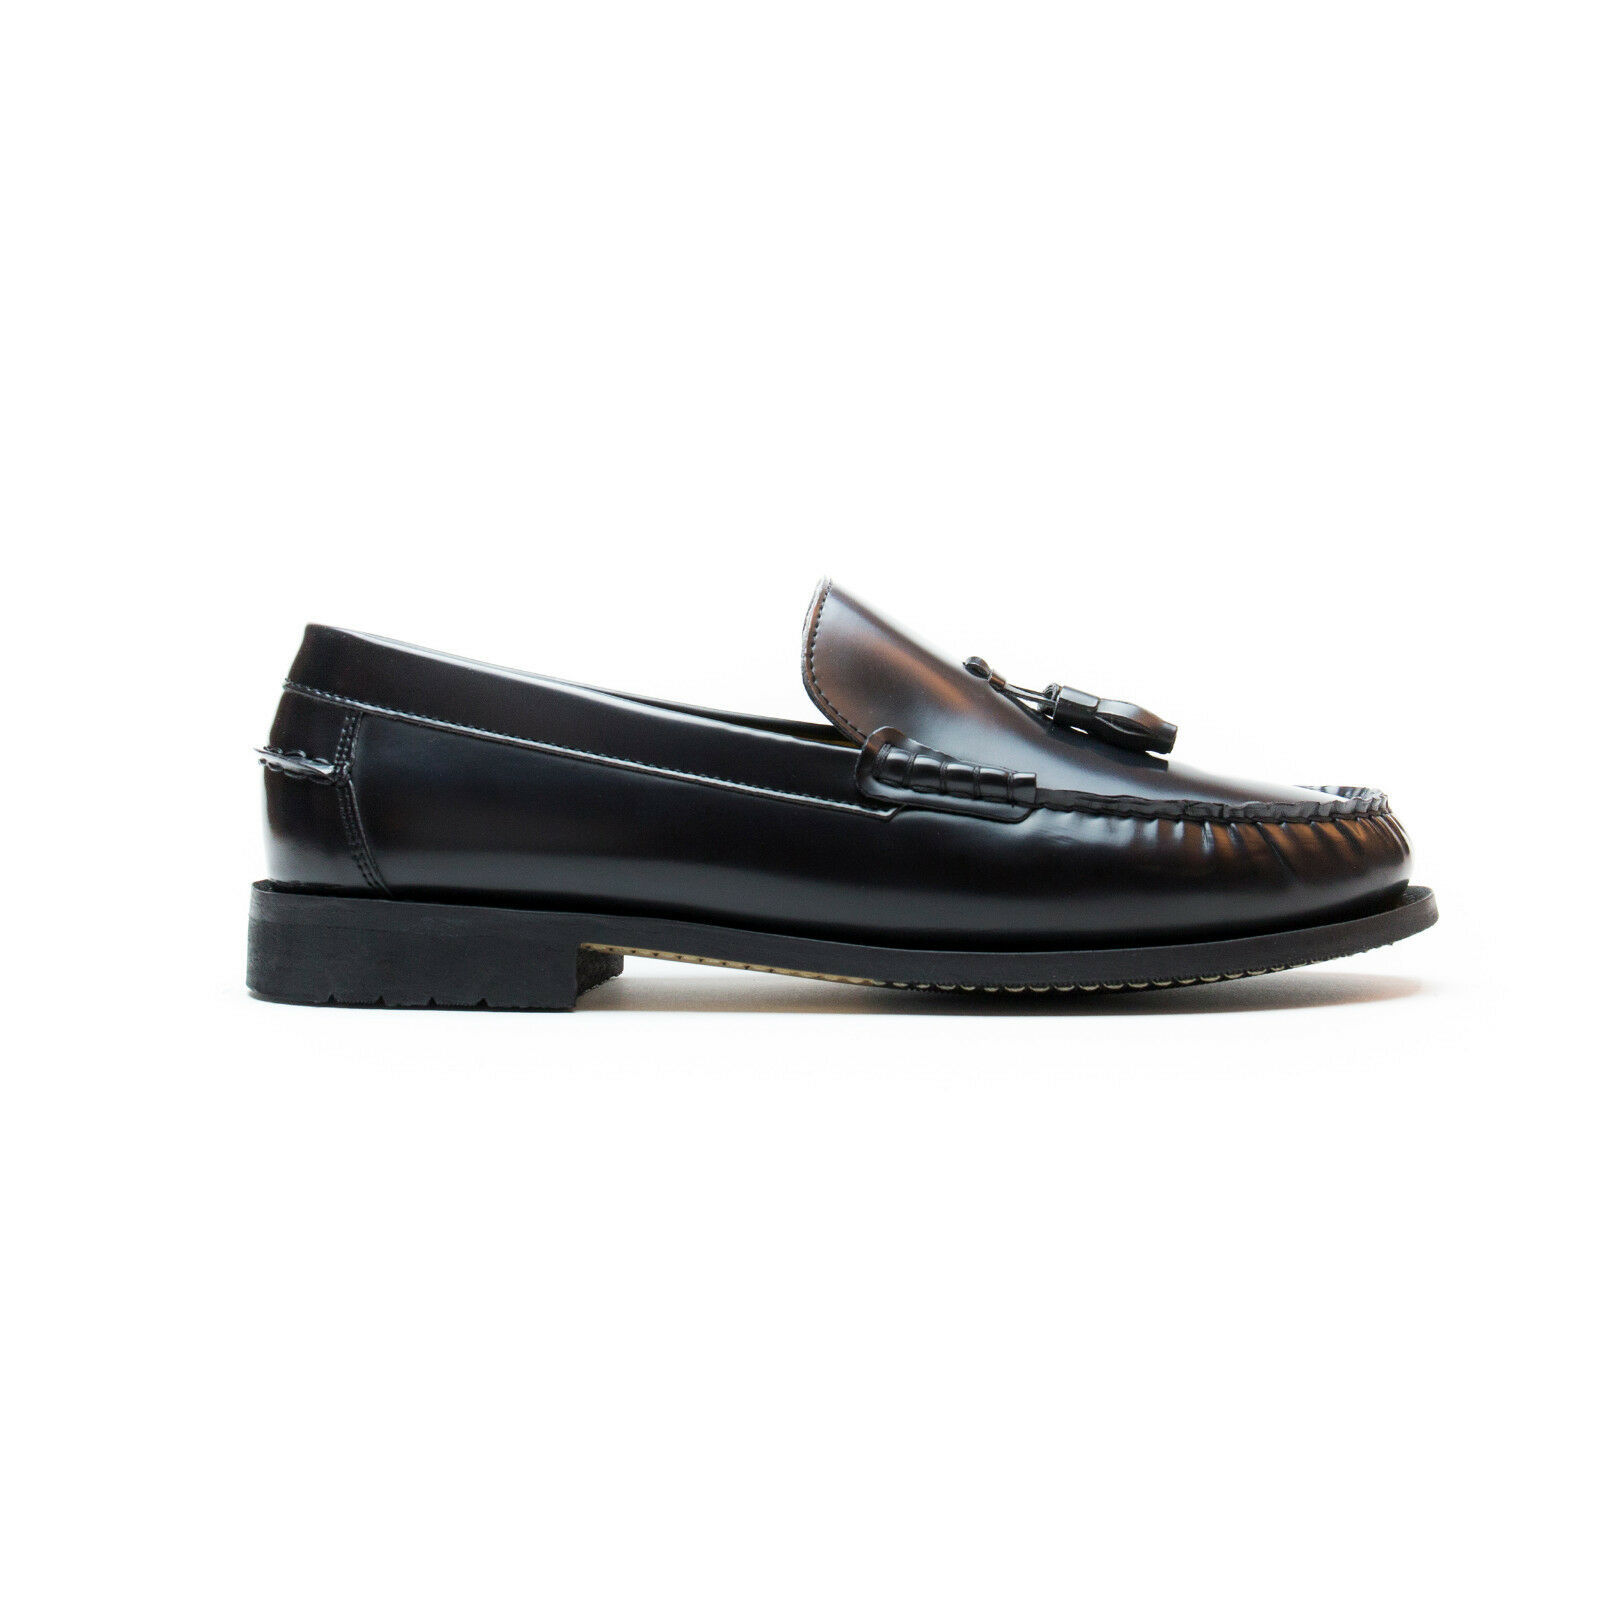 Primary image for Man vegan shoes tassle loafer moccasin on ecological & breathable microfiber